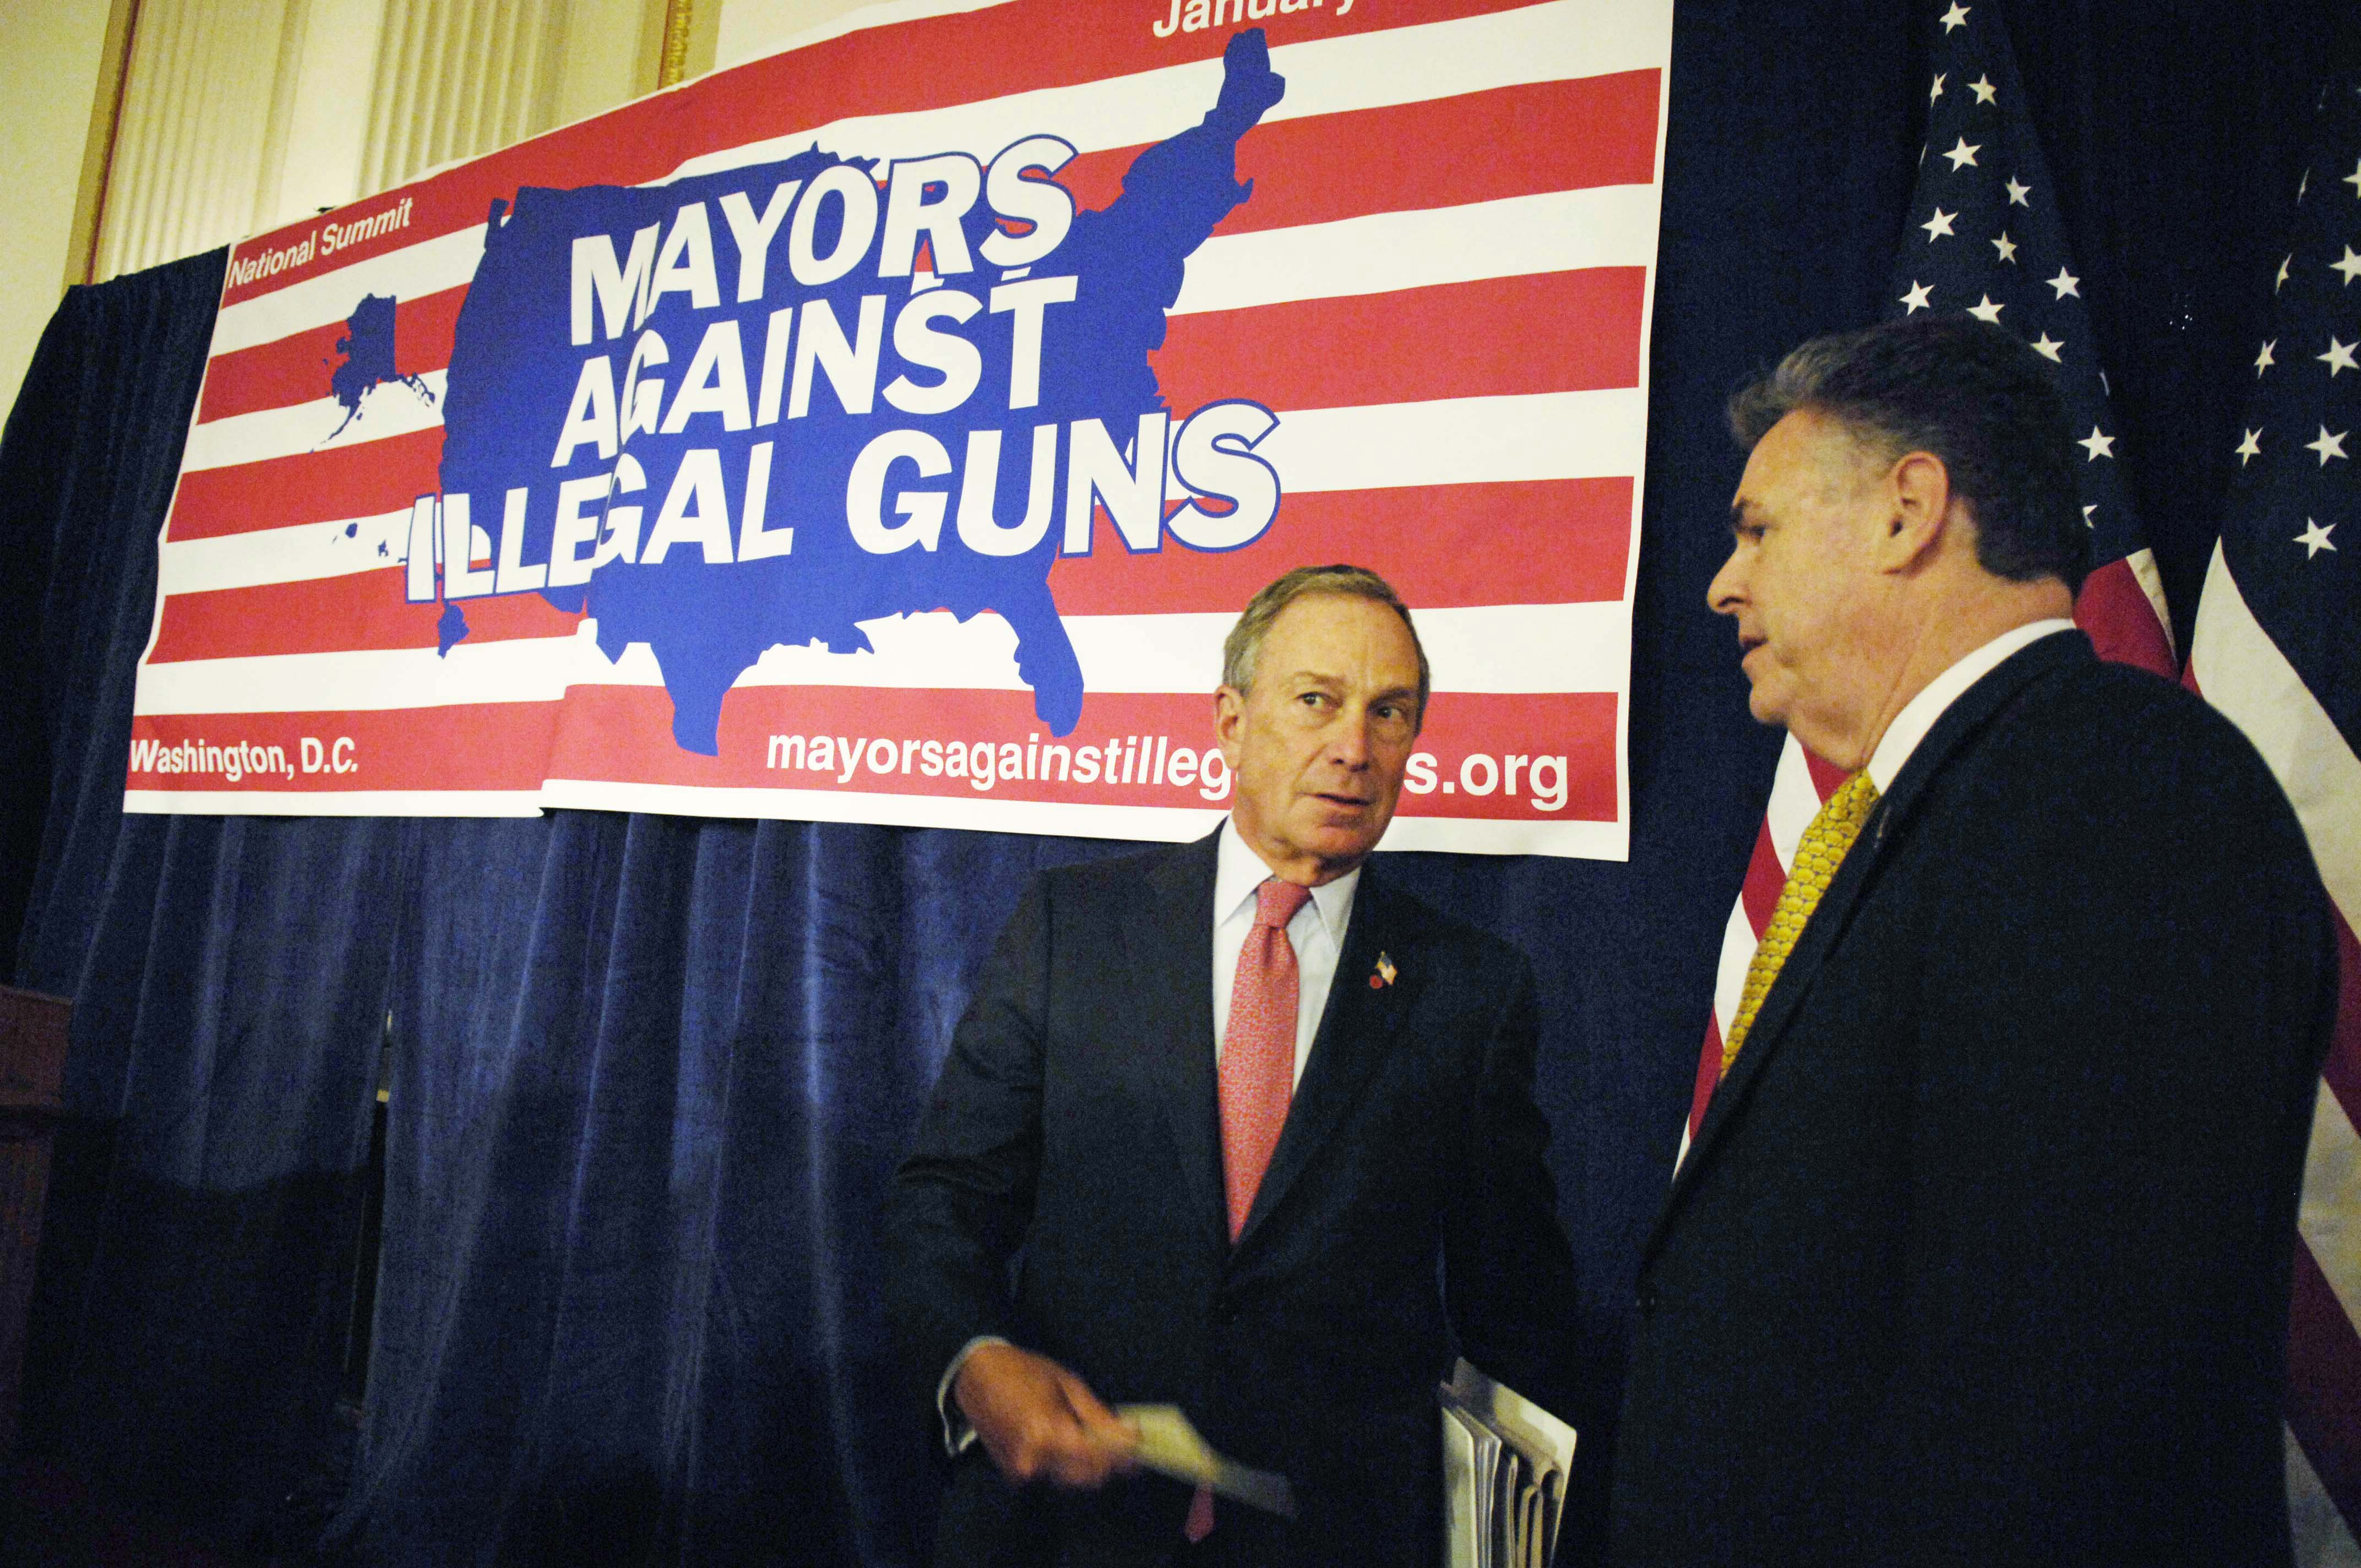 New York Mayor Michael Bloomberg with Rep. Peter T. King, R-N.Y. at a photo op in the Cannon House Office Building with mayors from around the country participating in the 2007 National Summit of Mayors Against Illegal Guns.